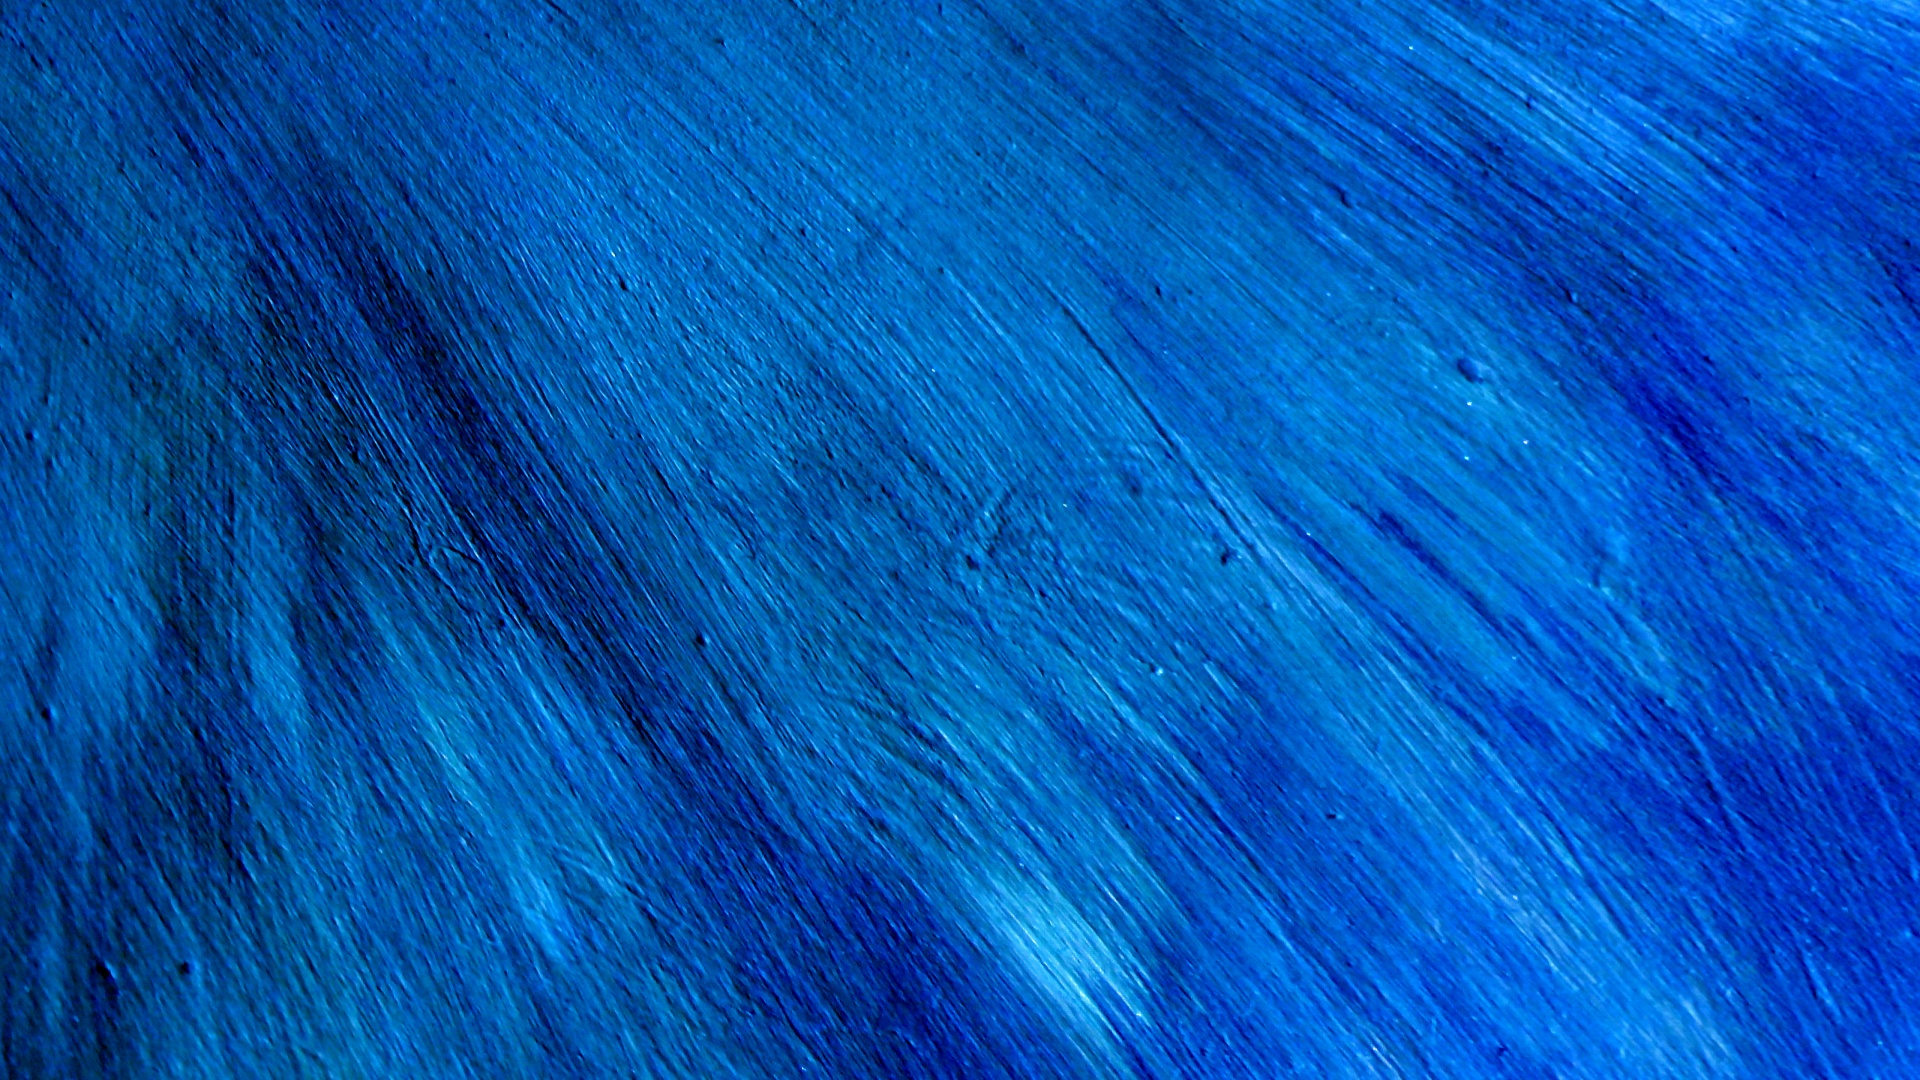 Blue Background Web Website Webpage Free Image From